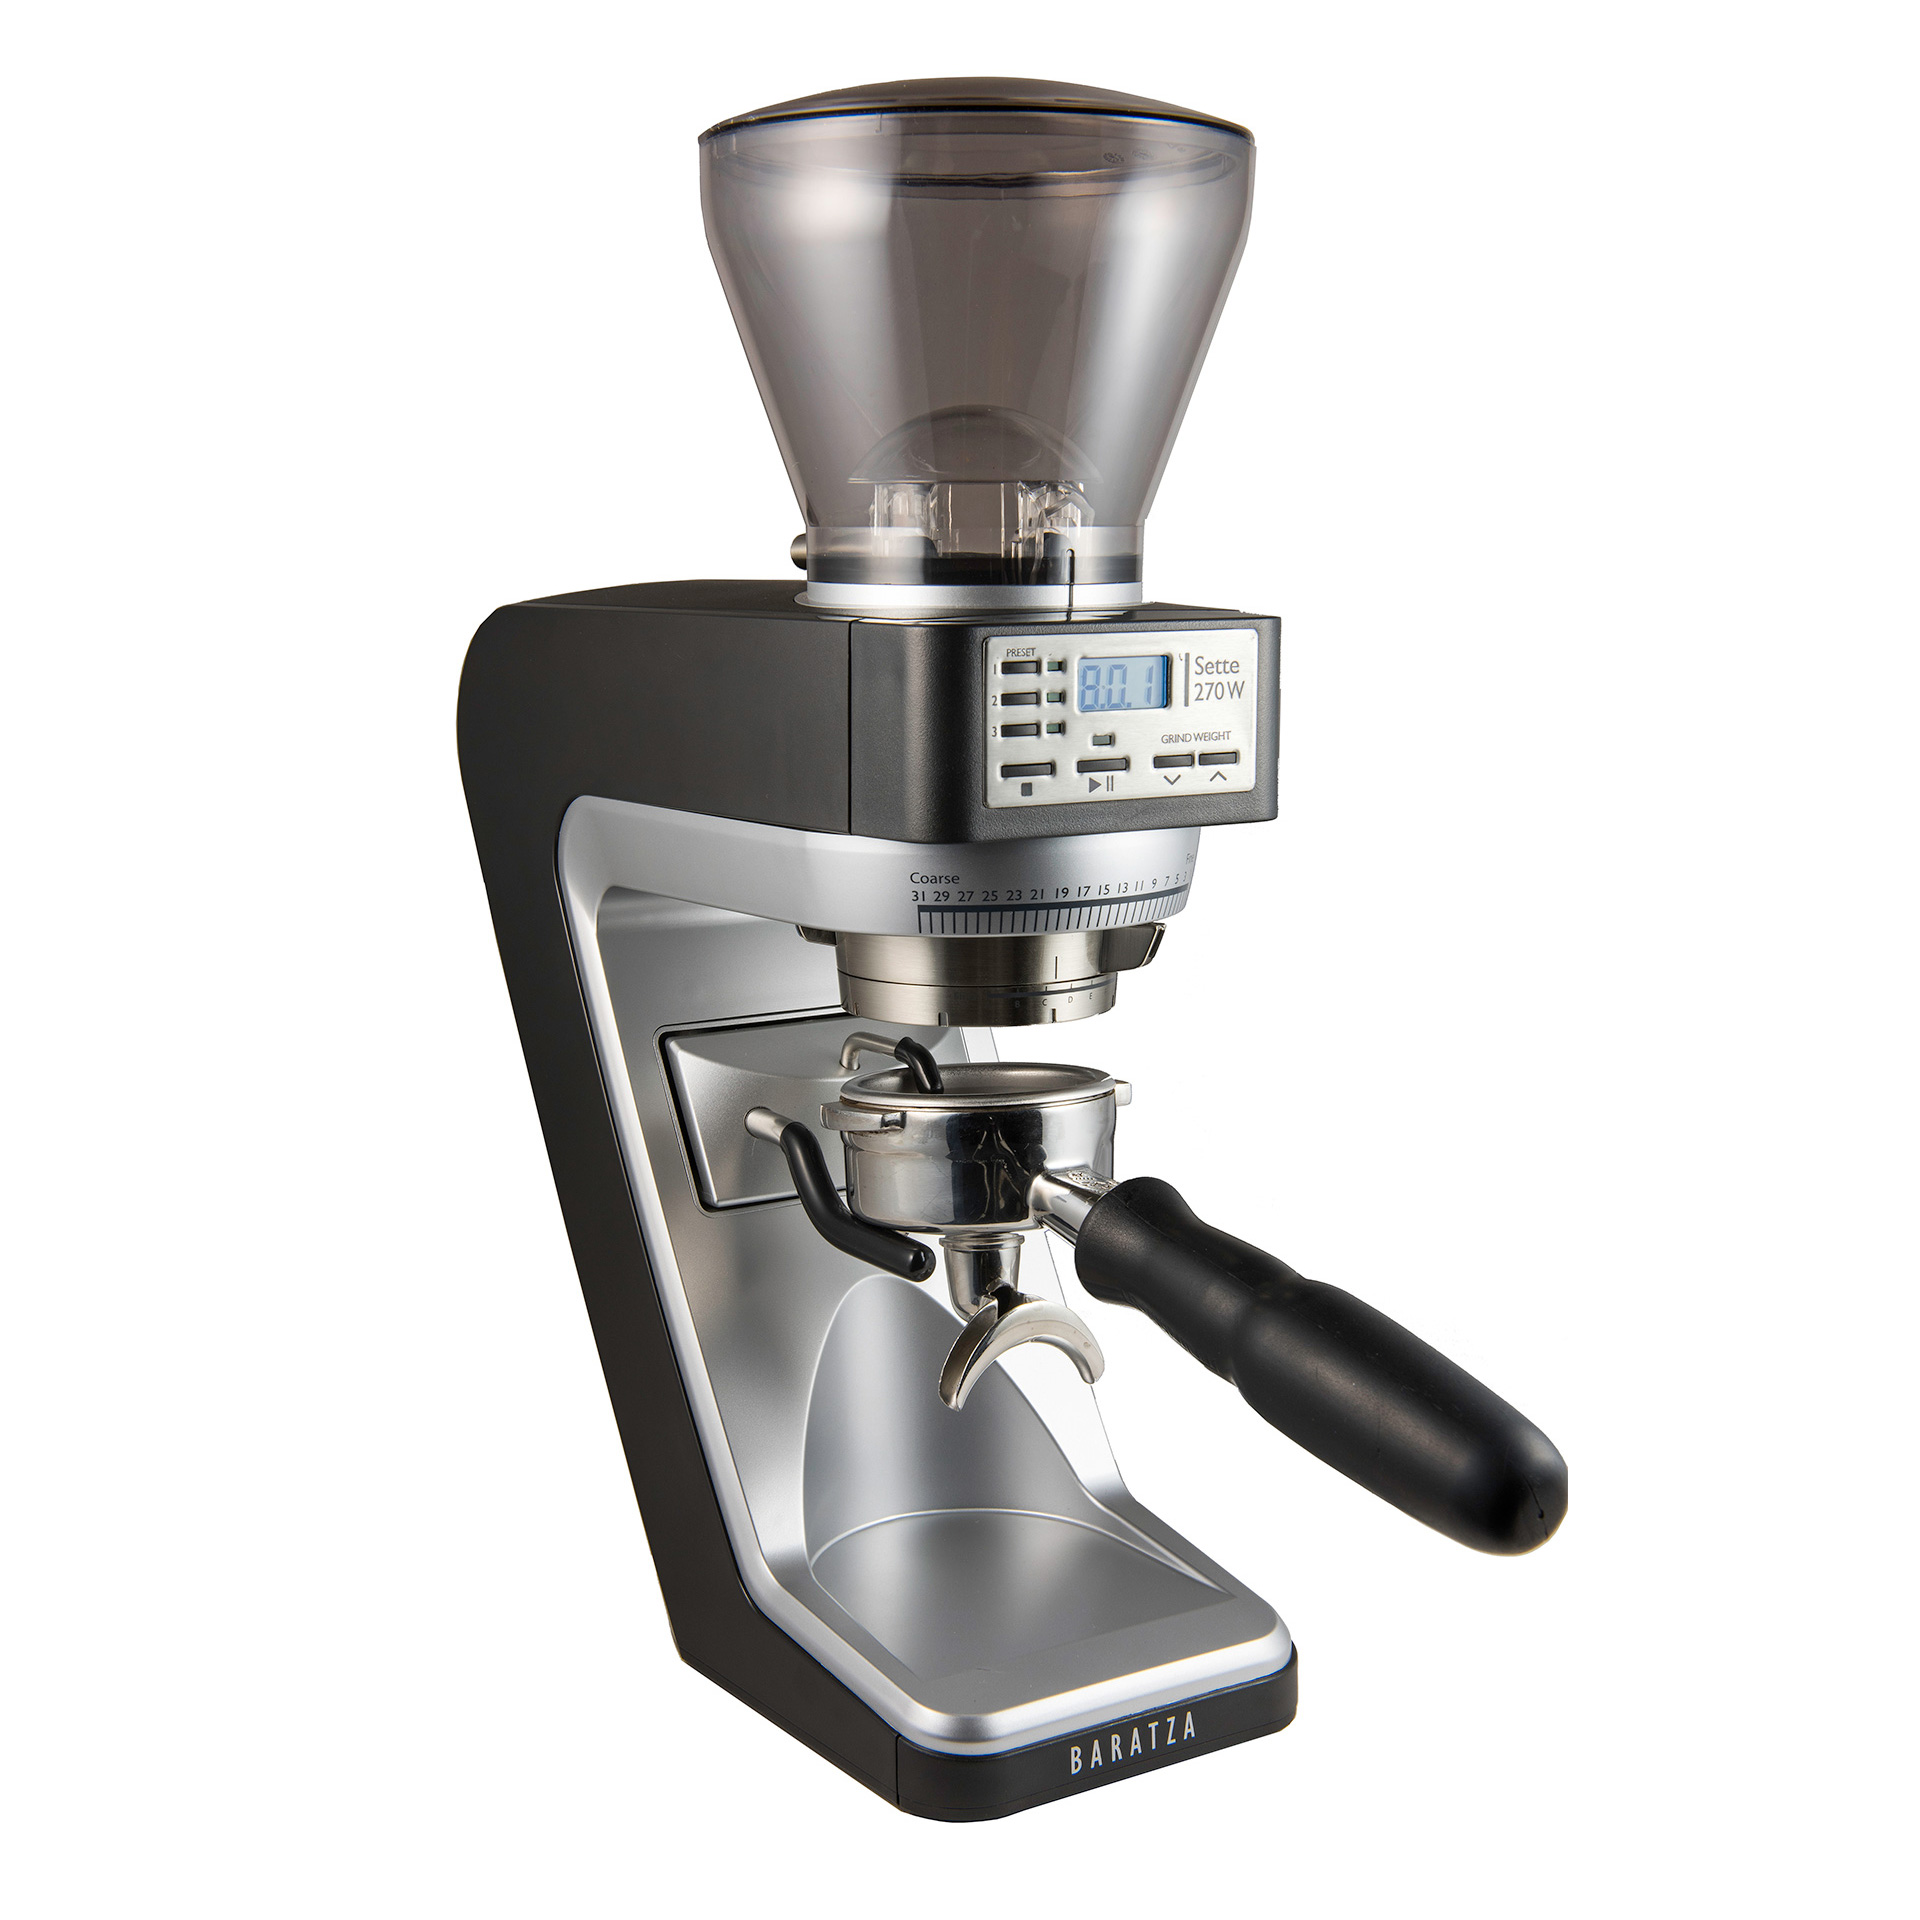 baratza sette 270w weight based conical burrs grinder. Black Bedroom Furniture Sets. Home Design Ideas